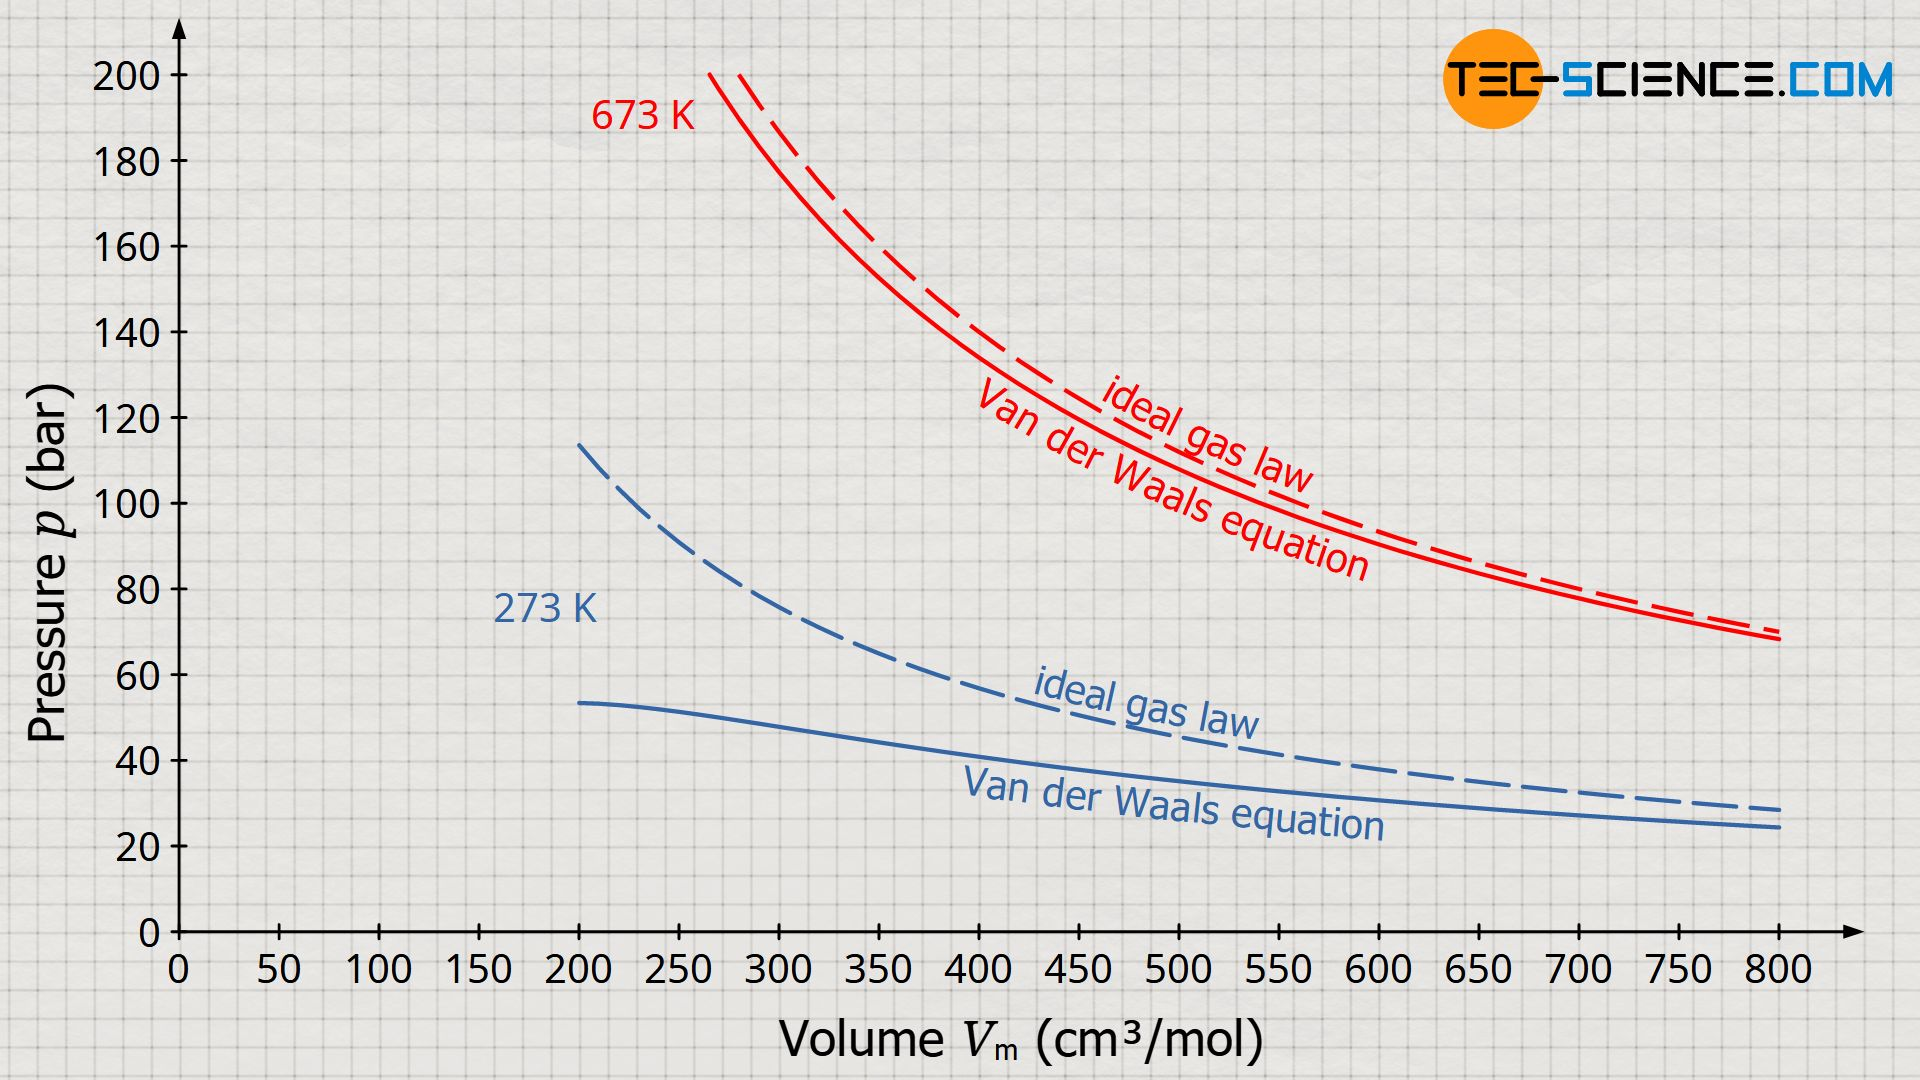 Comparison of the ideal gas law and the Van der Waals equation using carbon dioxide as an example